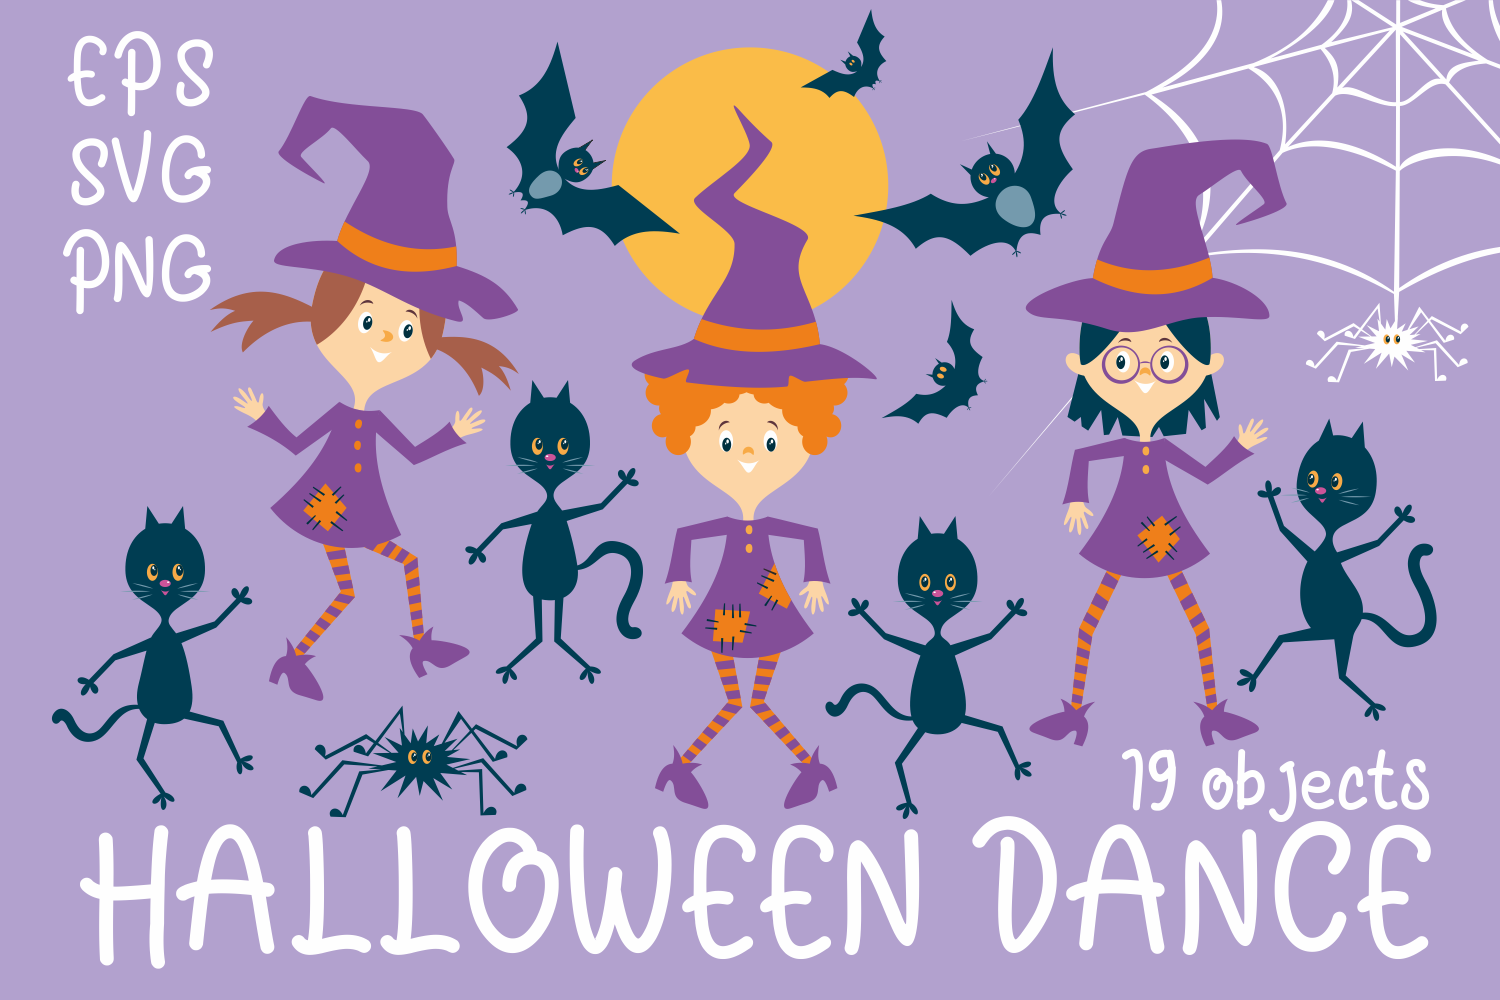 Halloween dance. Funny witches and black cats. example image 1